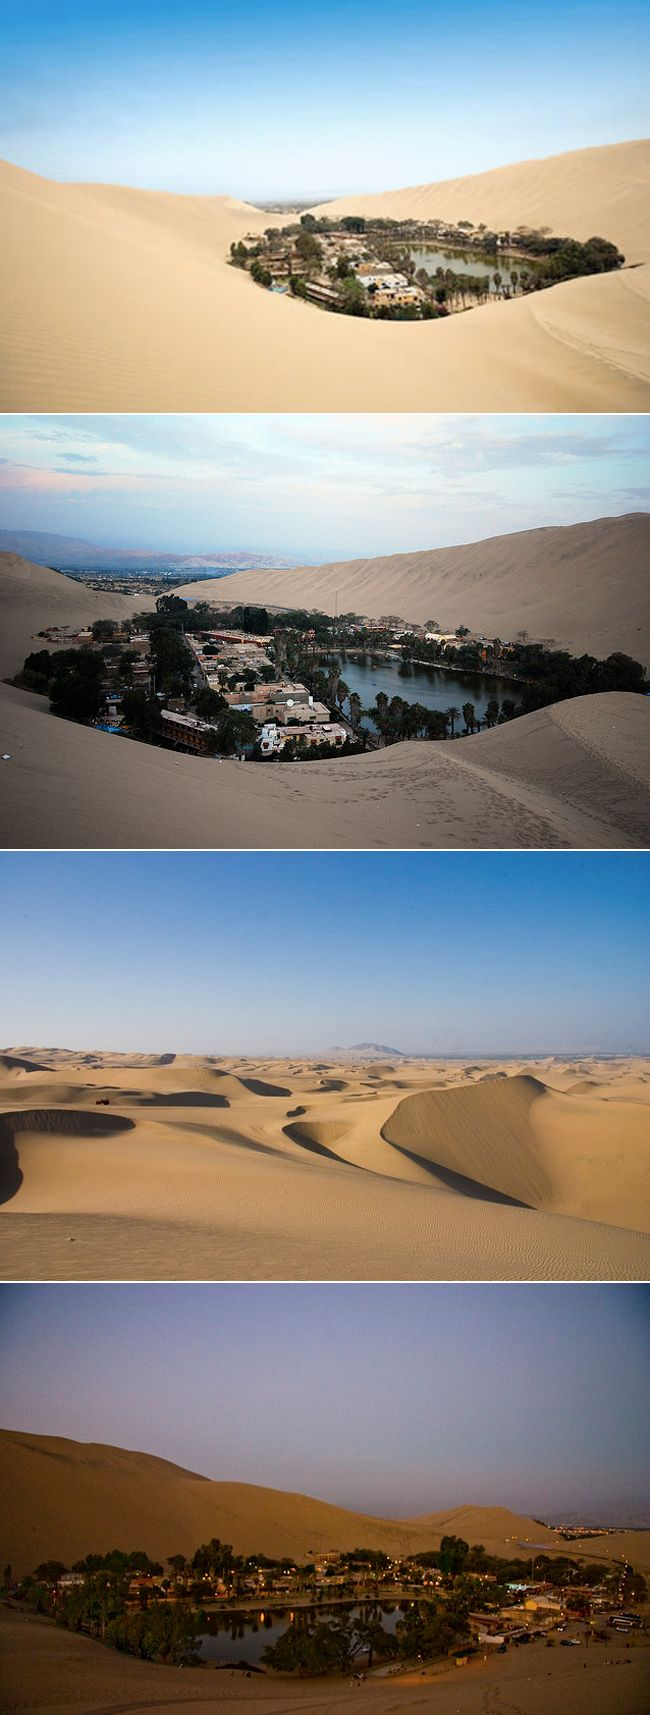 Huacachina, Peru. An oasis in the middle of the dessert, full of backpackers, expats, adventure travel and many fun sports activities.   Tip: sand-surfing the sand dunes is an adventure not to be missed!!